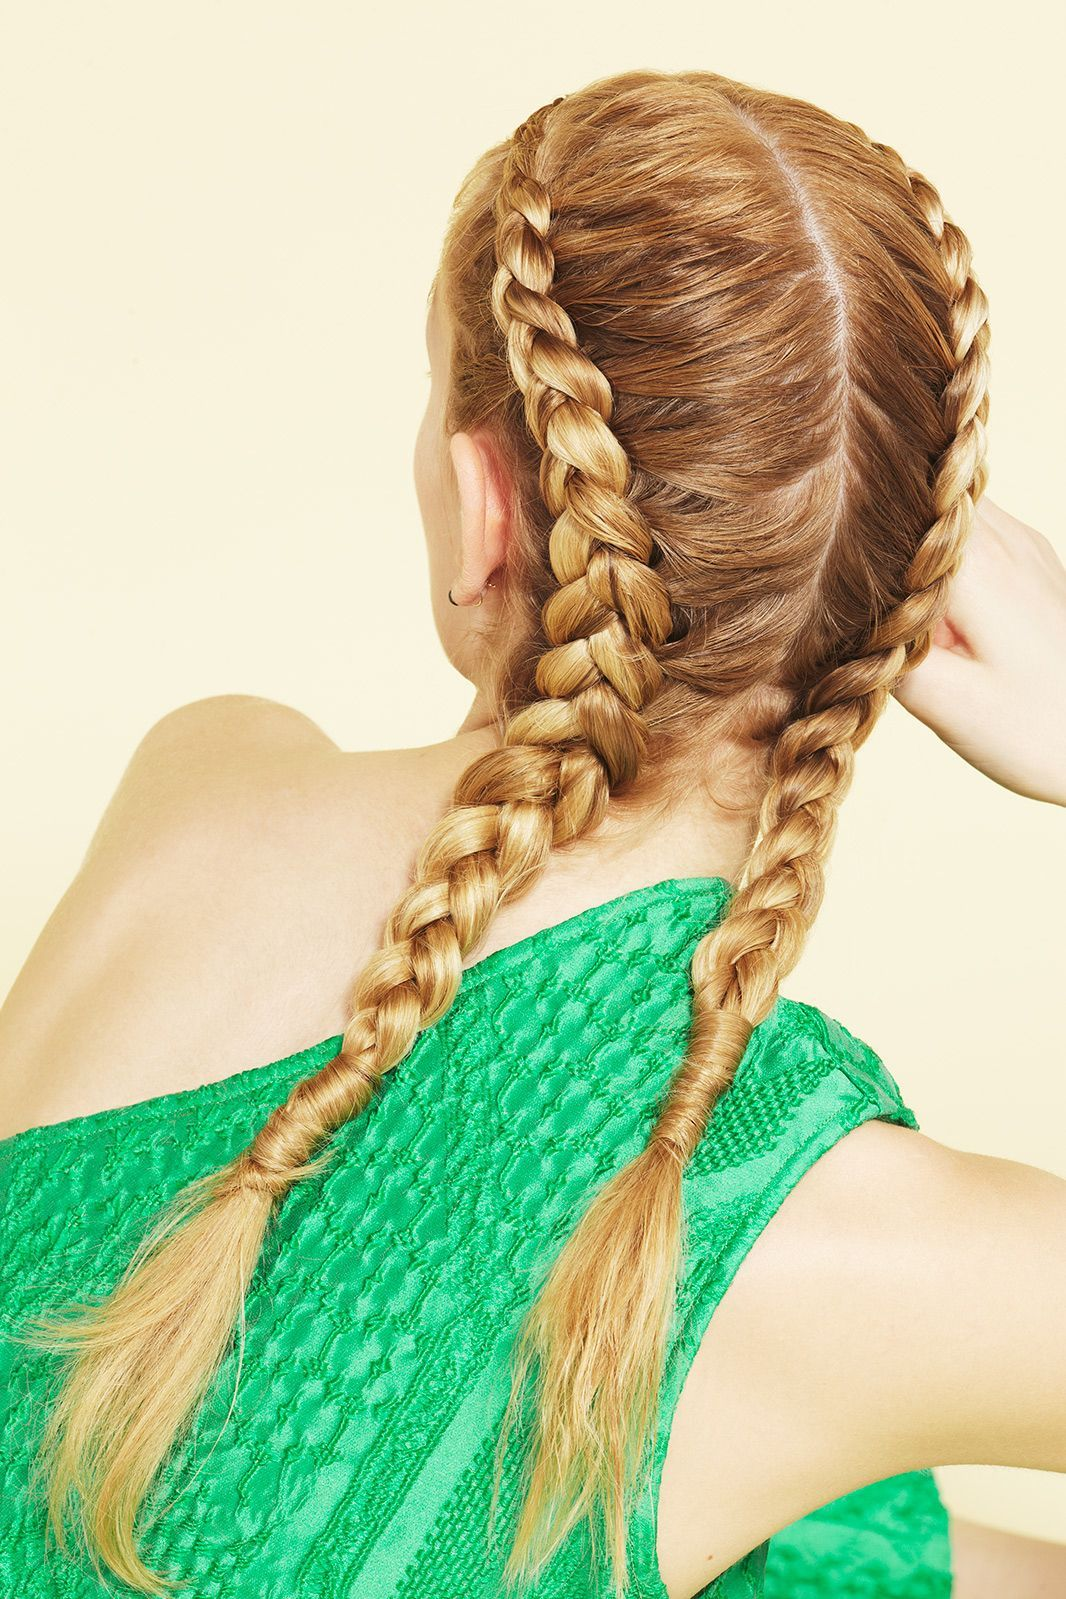 Braids Are Not That Complicated